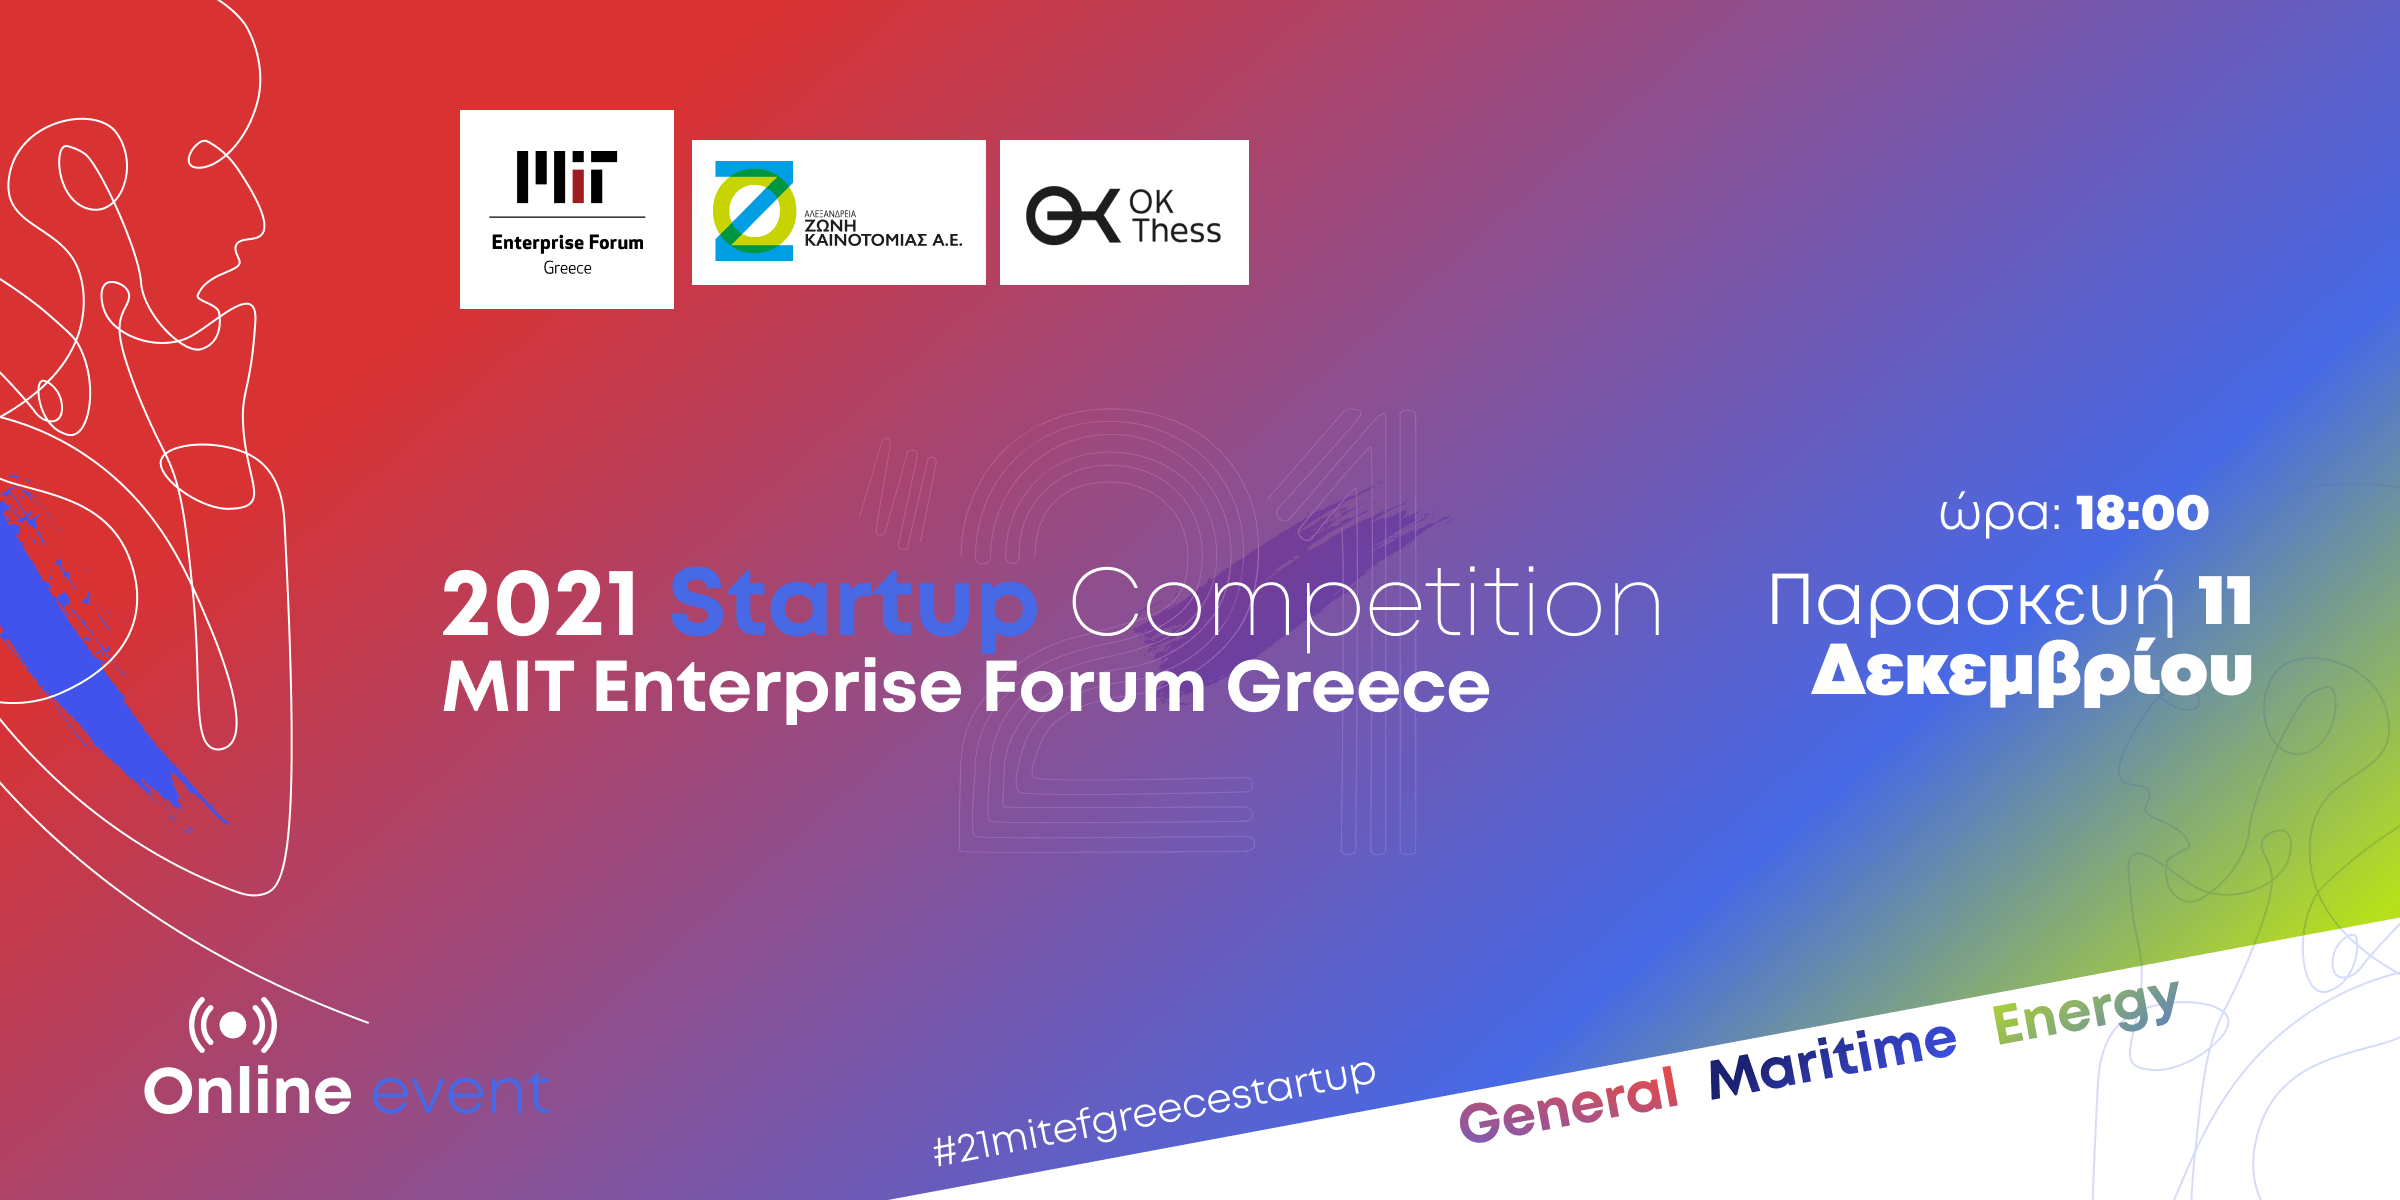 MITEF Greece Startup Competition 2021